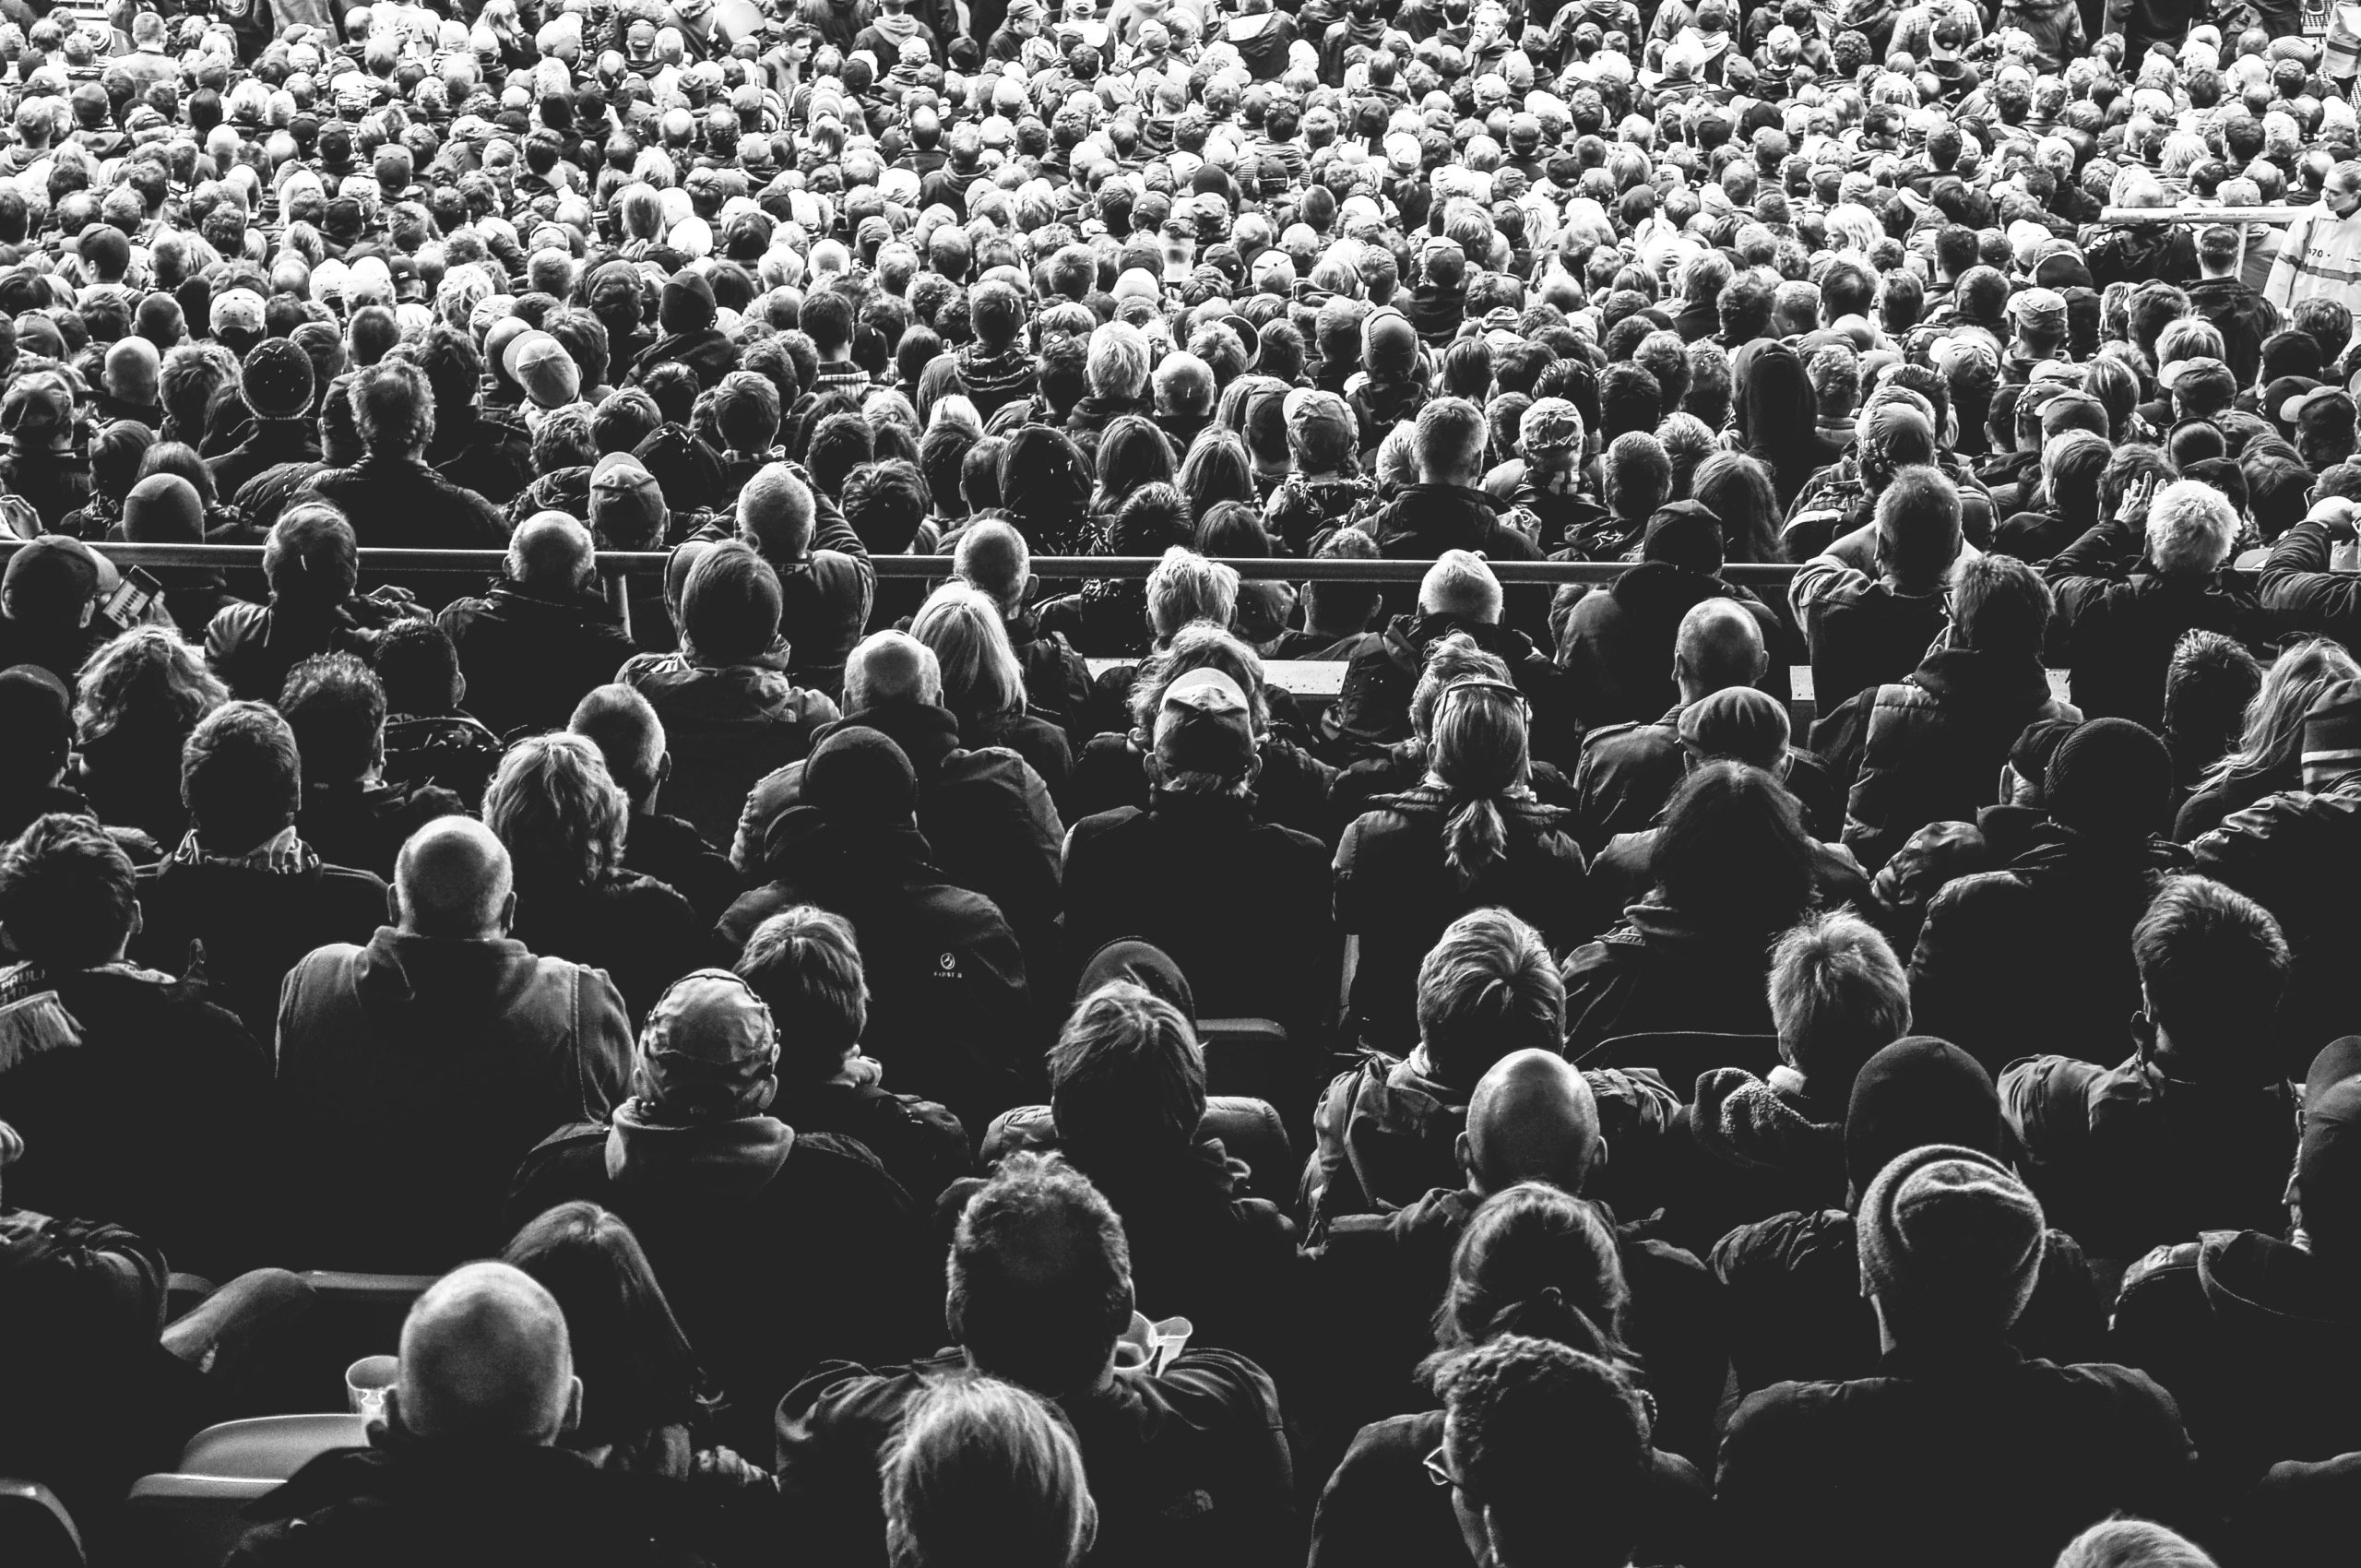 Large audience, from behind, in black and white